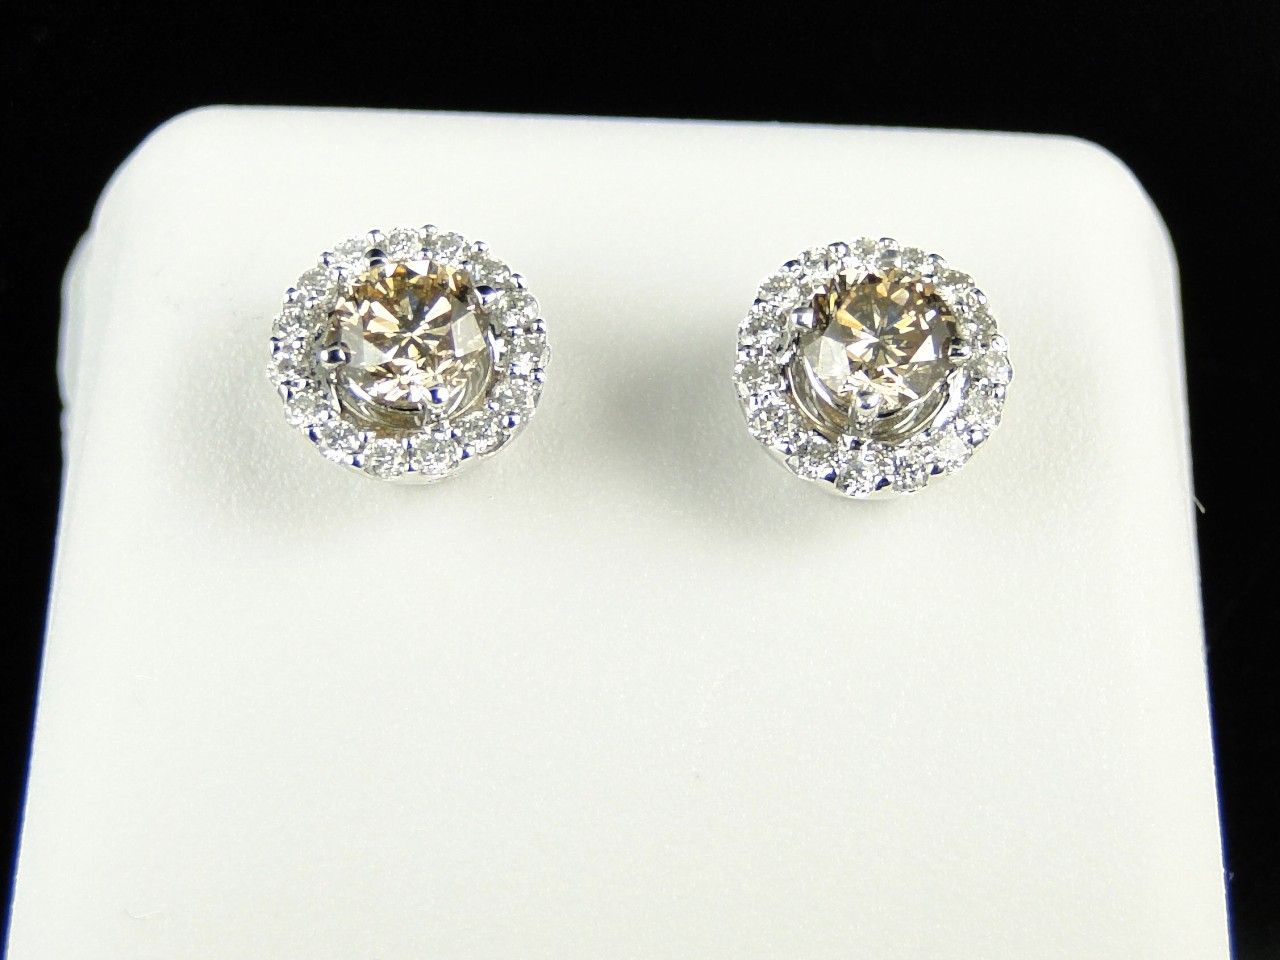 Solitaire With Jacket Brown Diamond Stud Earrings In 14k White Gold